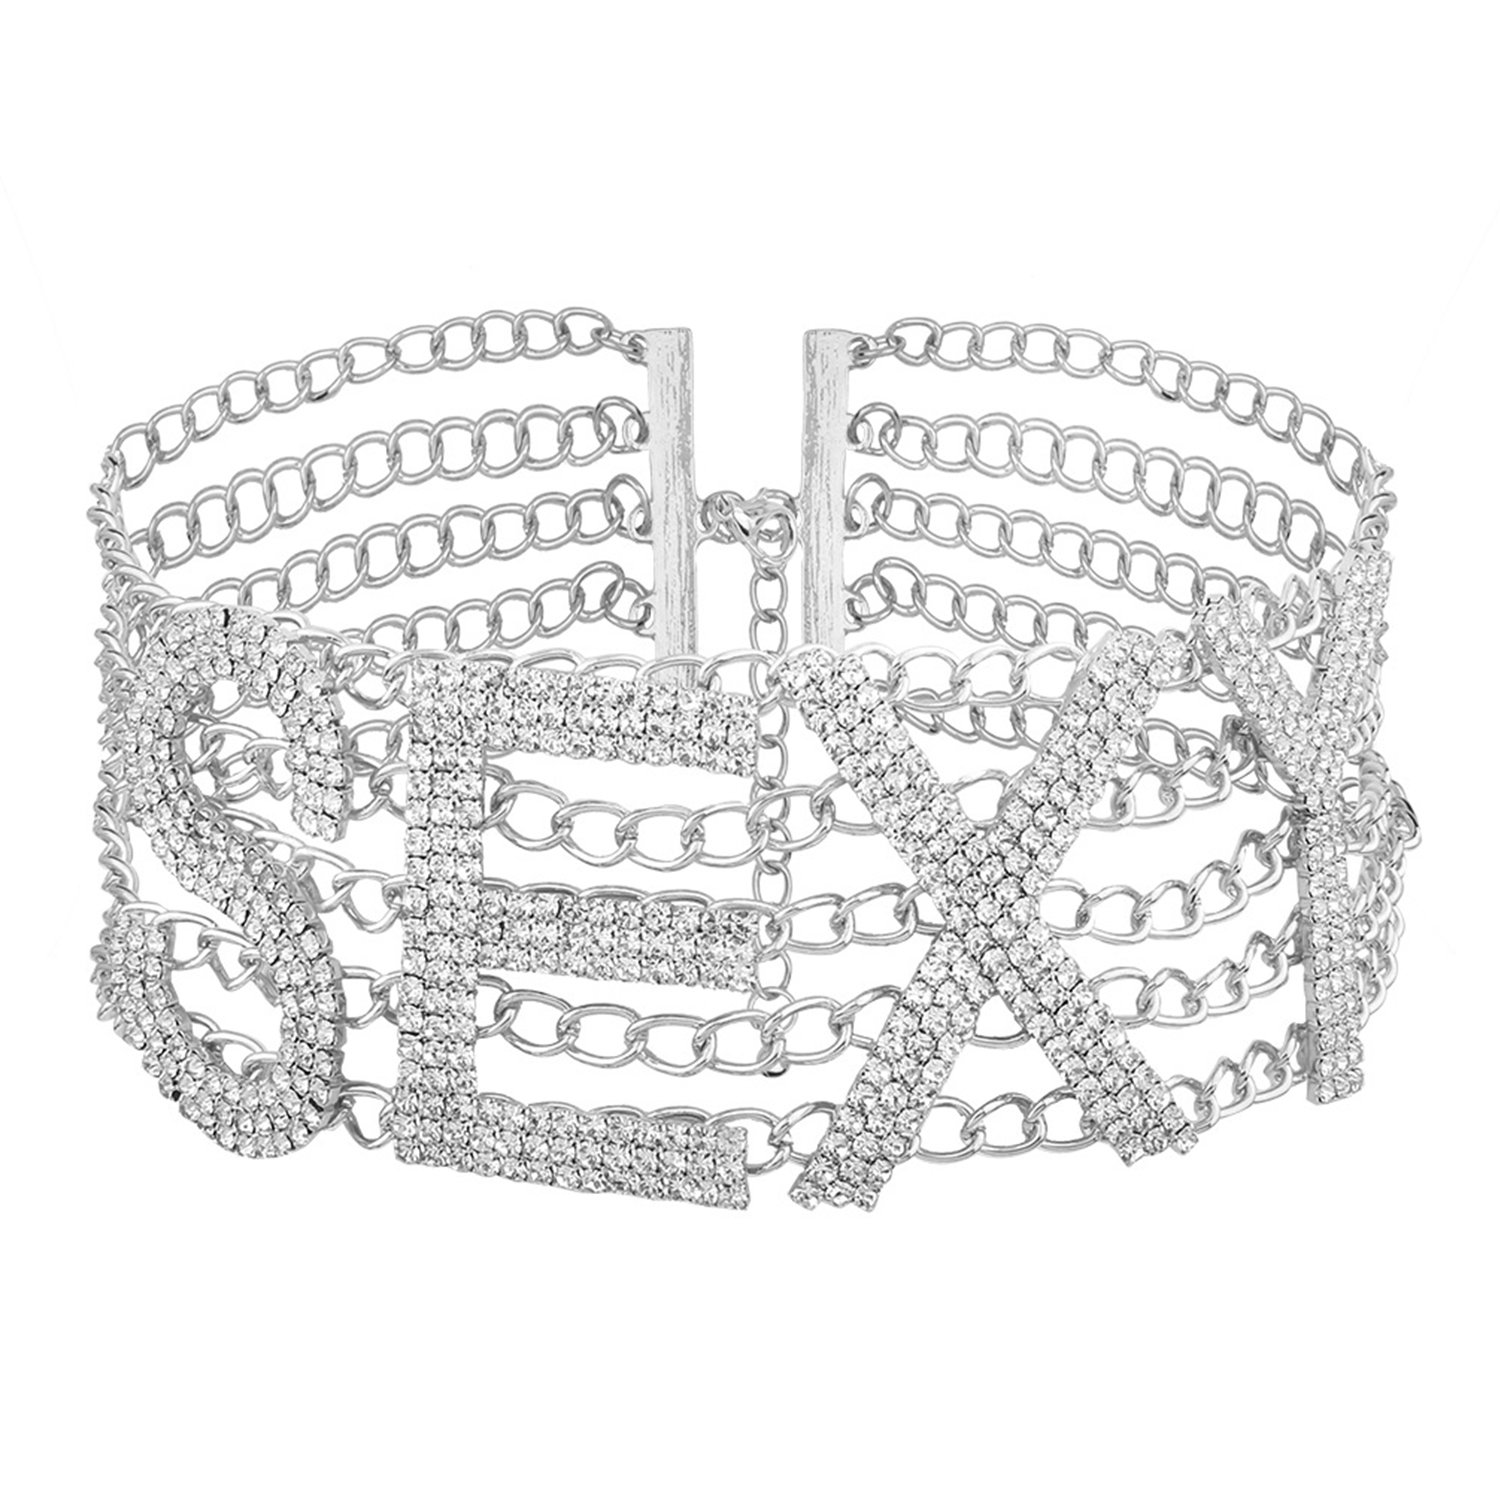 Croozy Womens SEXY Rhinestone Choker Girls Crystal Letter Choker Necklace Bride Collar Party Choker Necklace (Silver)